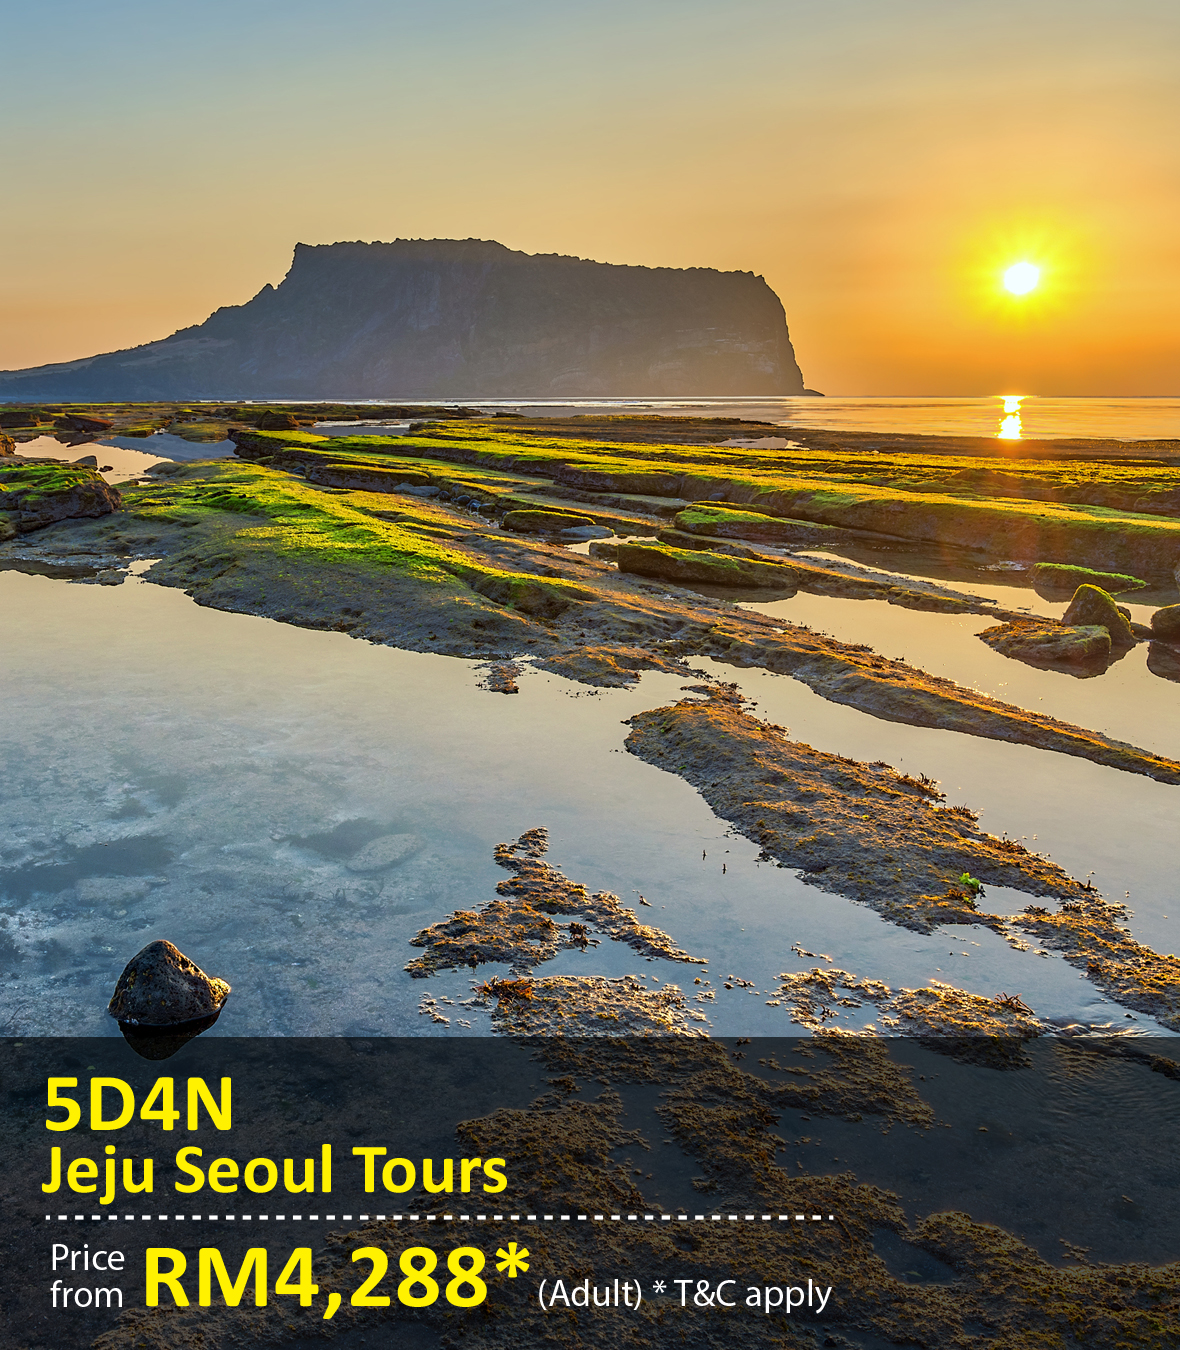 UOB Special Promo Package: 5 Days 4 Nights Jeju Seoul Tour